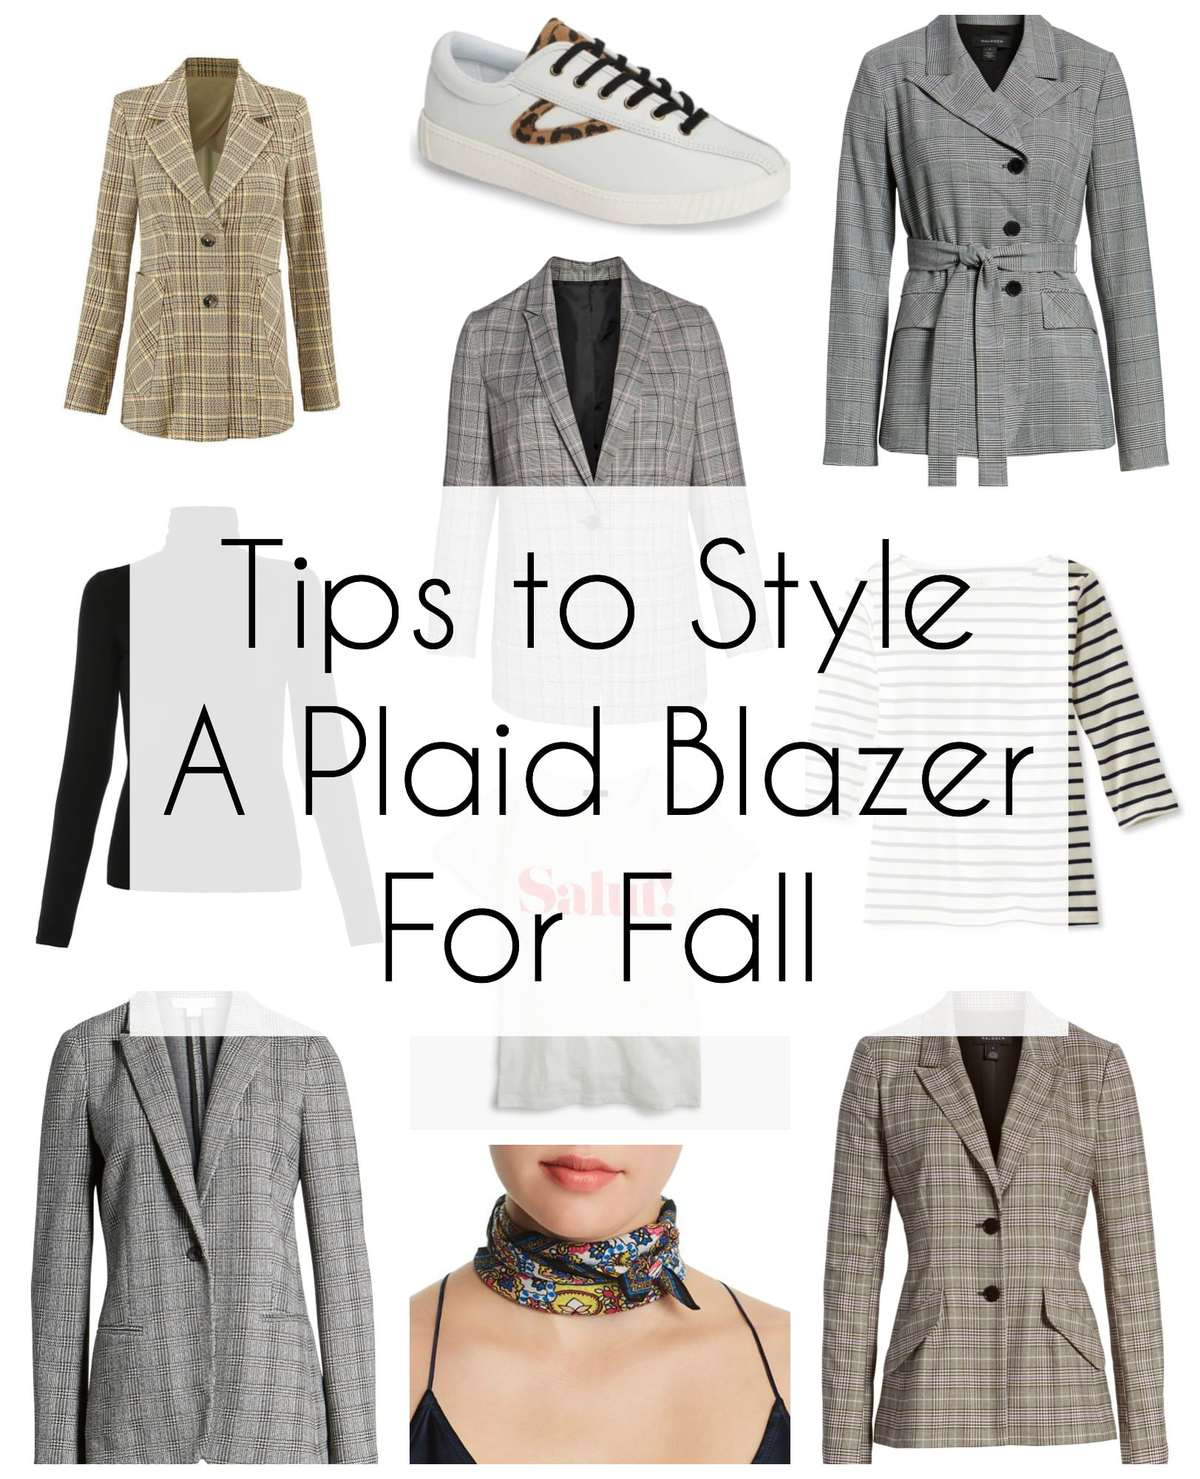 tips on how to style a plaid blazer for fall for weekend and work